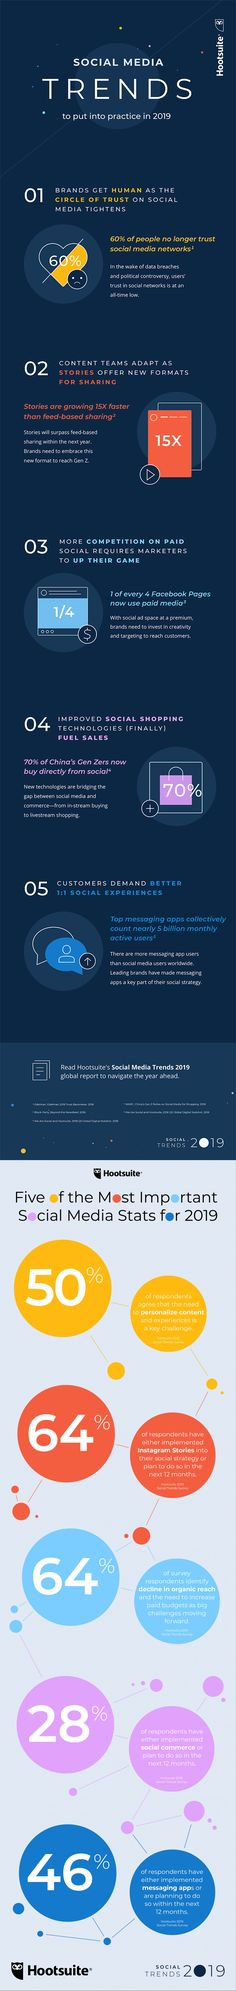 How do you plan to use social media as part of your marketing strategy in Want to know the latest social media trends that you should consider putting into practice? Then check the infographic shared in this article, for further details. Social Media Trends, Social Media Marketing, Digital Marketing, Marketing Strategies, Email Marketing, Content Marketing, Affiliate Marketing, Leaflet Distribution, Photography Marketing